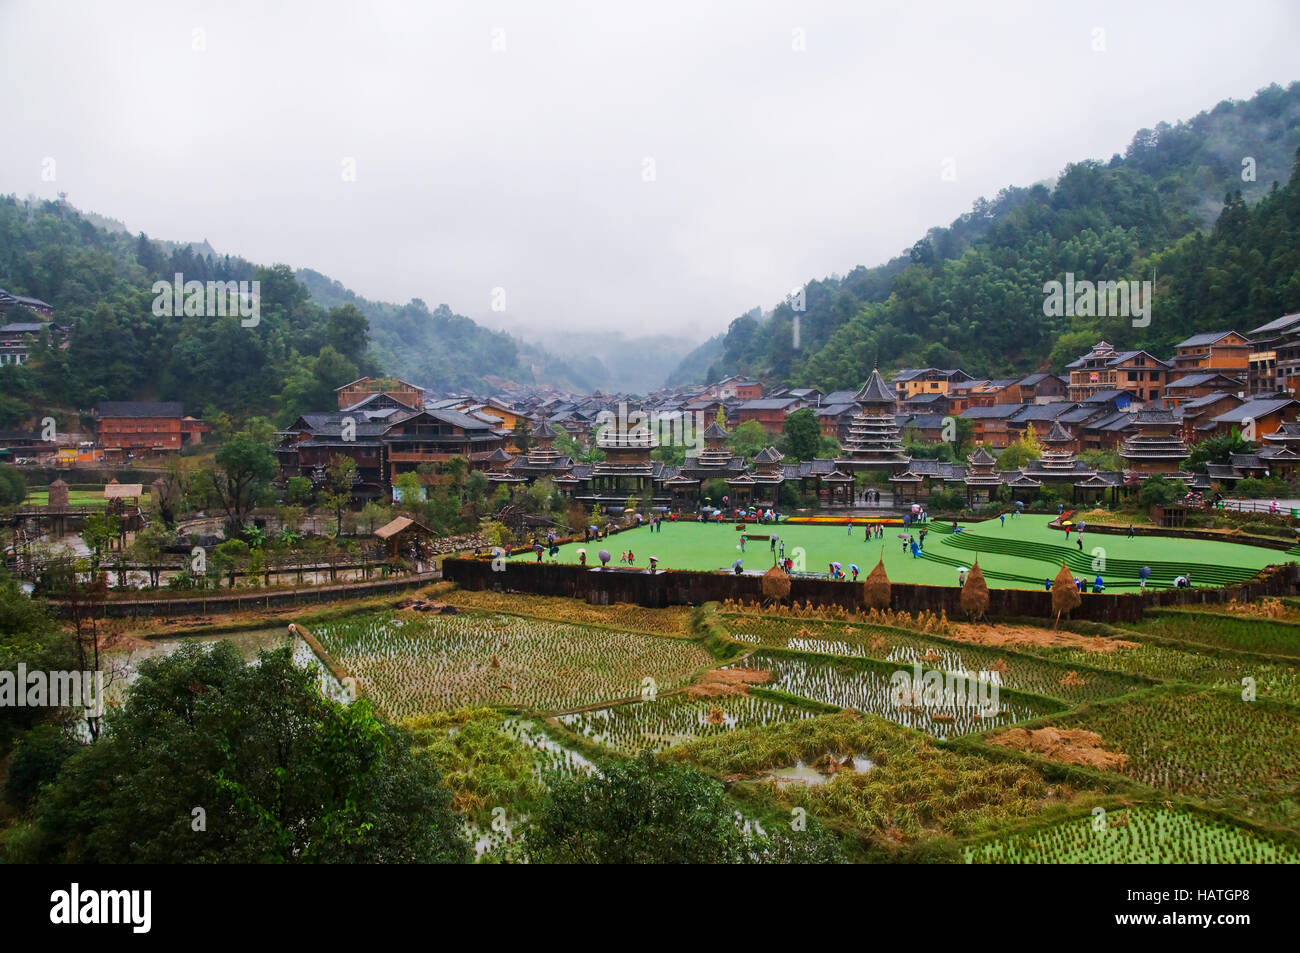 The Zhaoxing Dong Village in Guizhou Province of China is an interesting cultural destination. Stock Photo